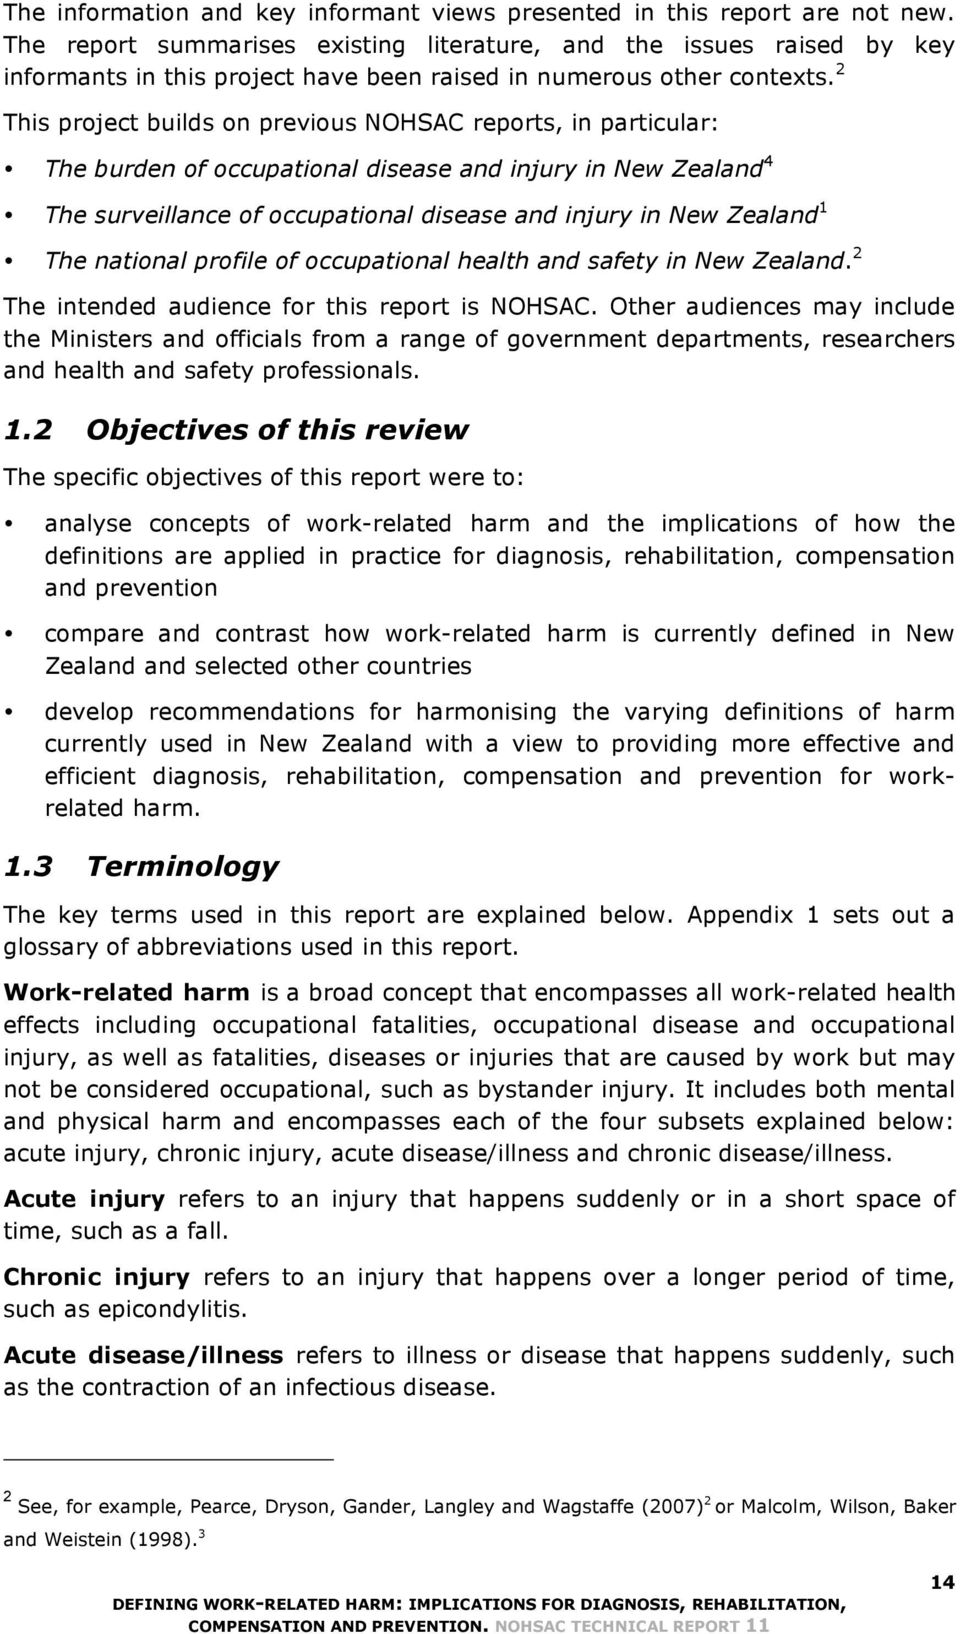 2 This project builds on previous NOHSAC reports, in particular: The burden of occupational disease and injury in New Zealand 4 The surveillance of occupational disease and injury in New Zealand 1